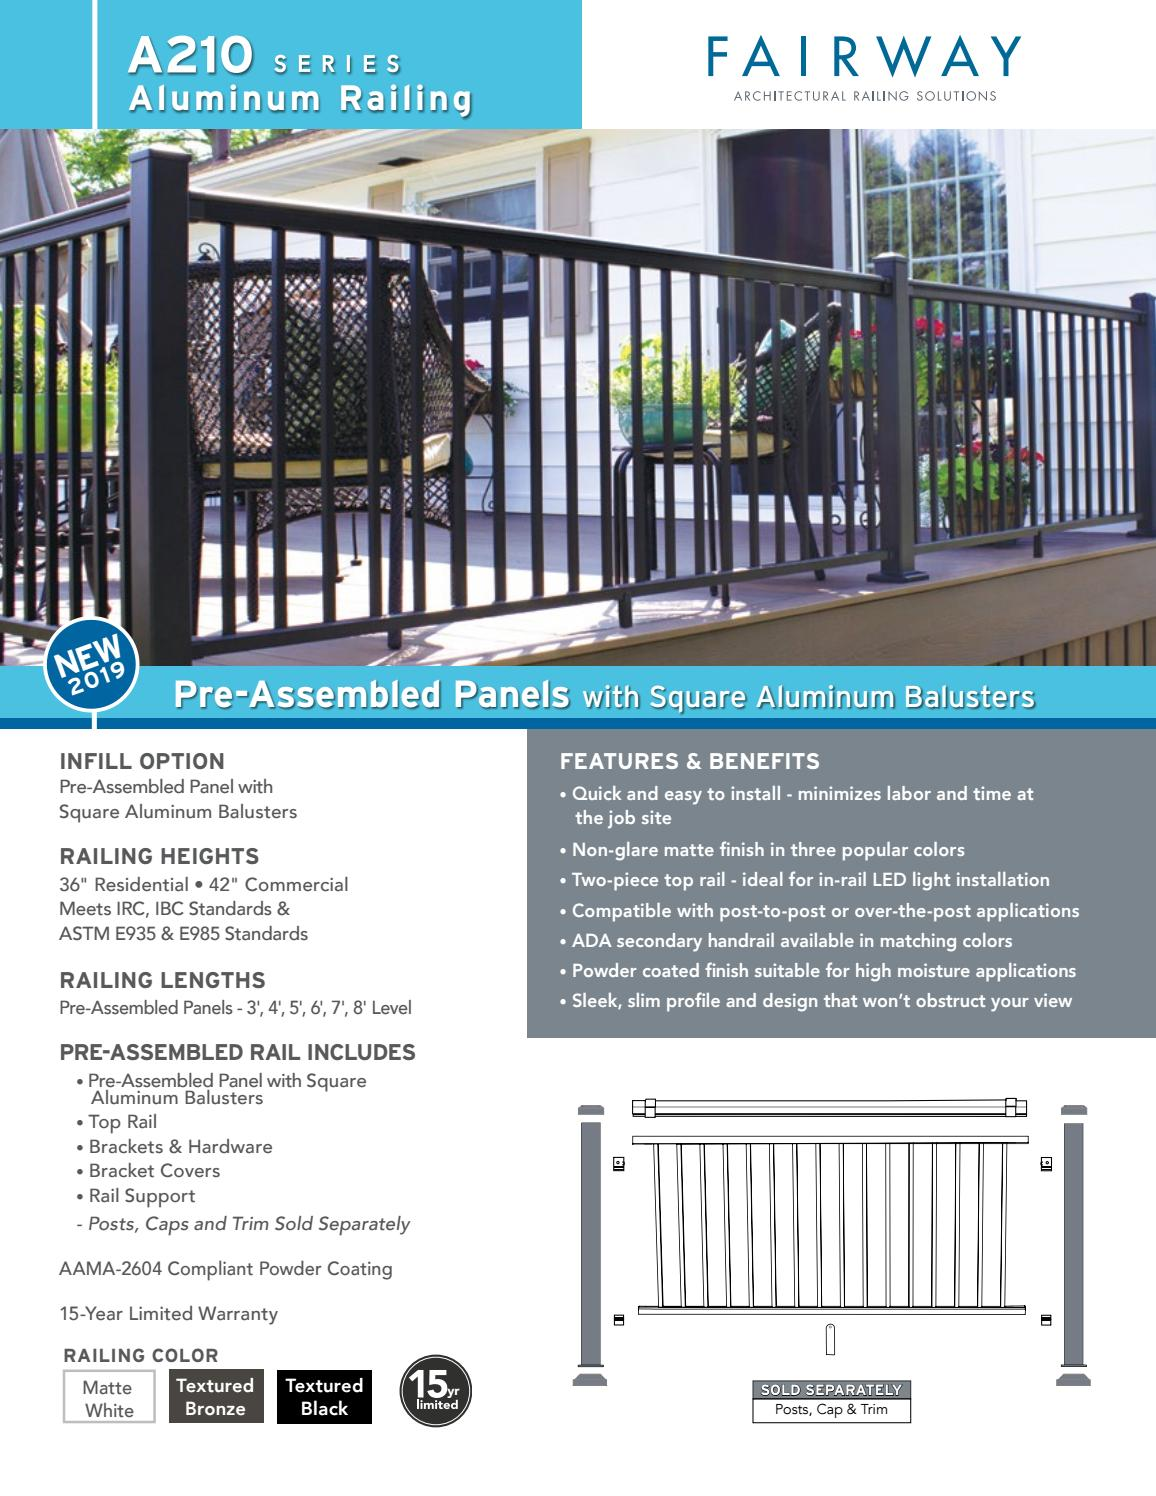 A210 Pre-Assembled Panels with Square Aluminum Balusters